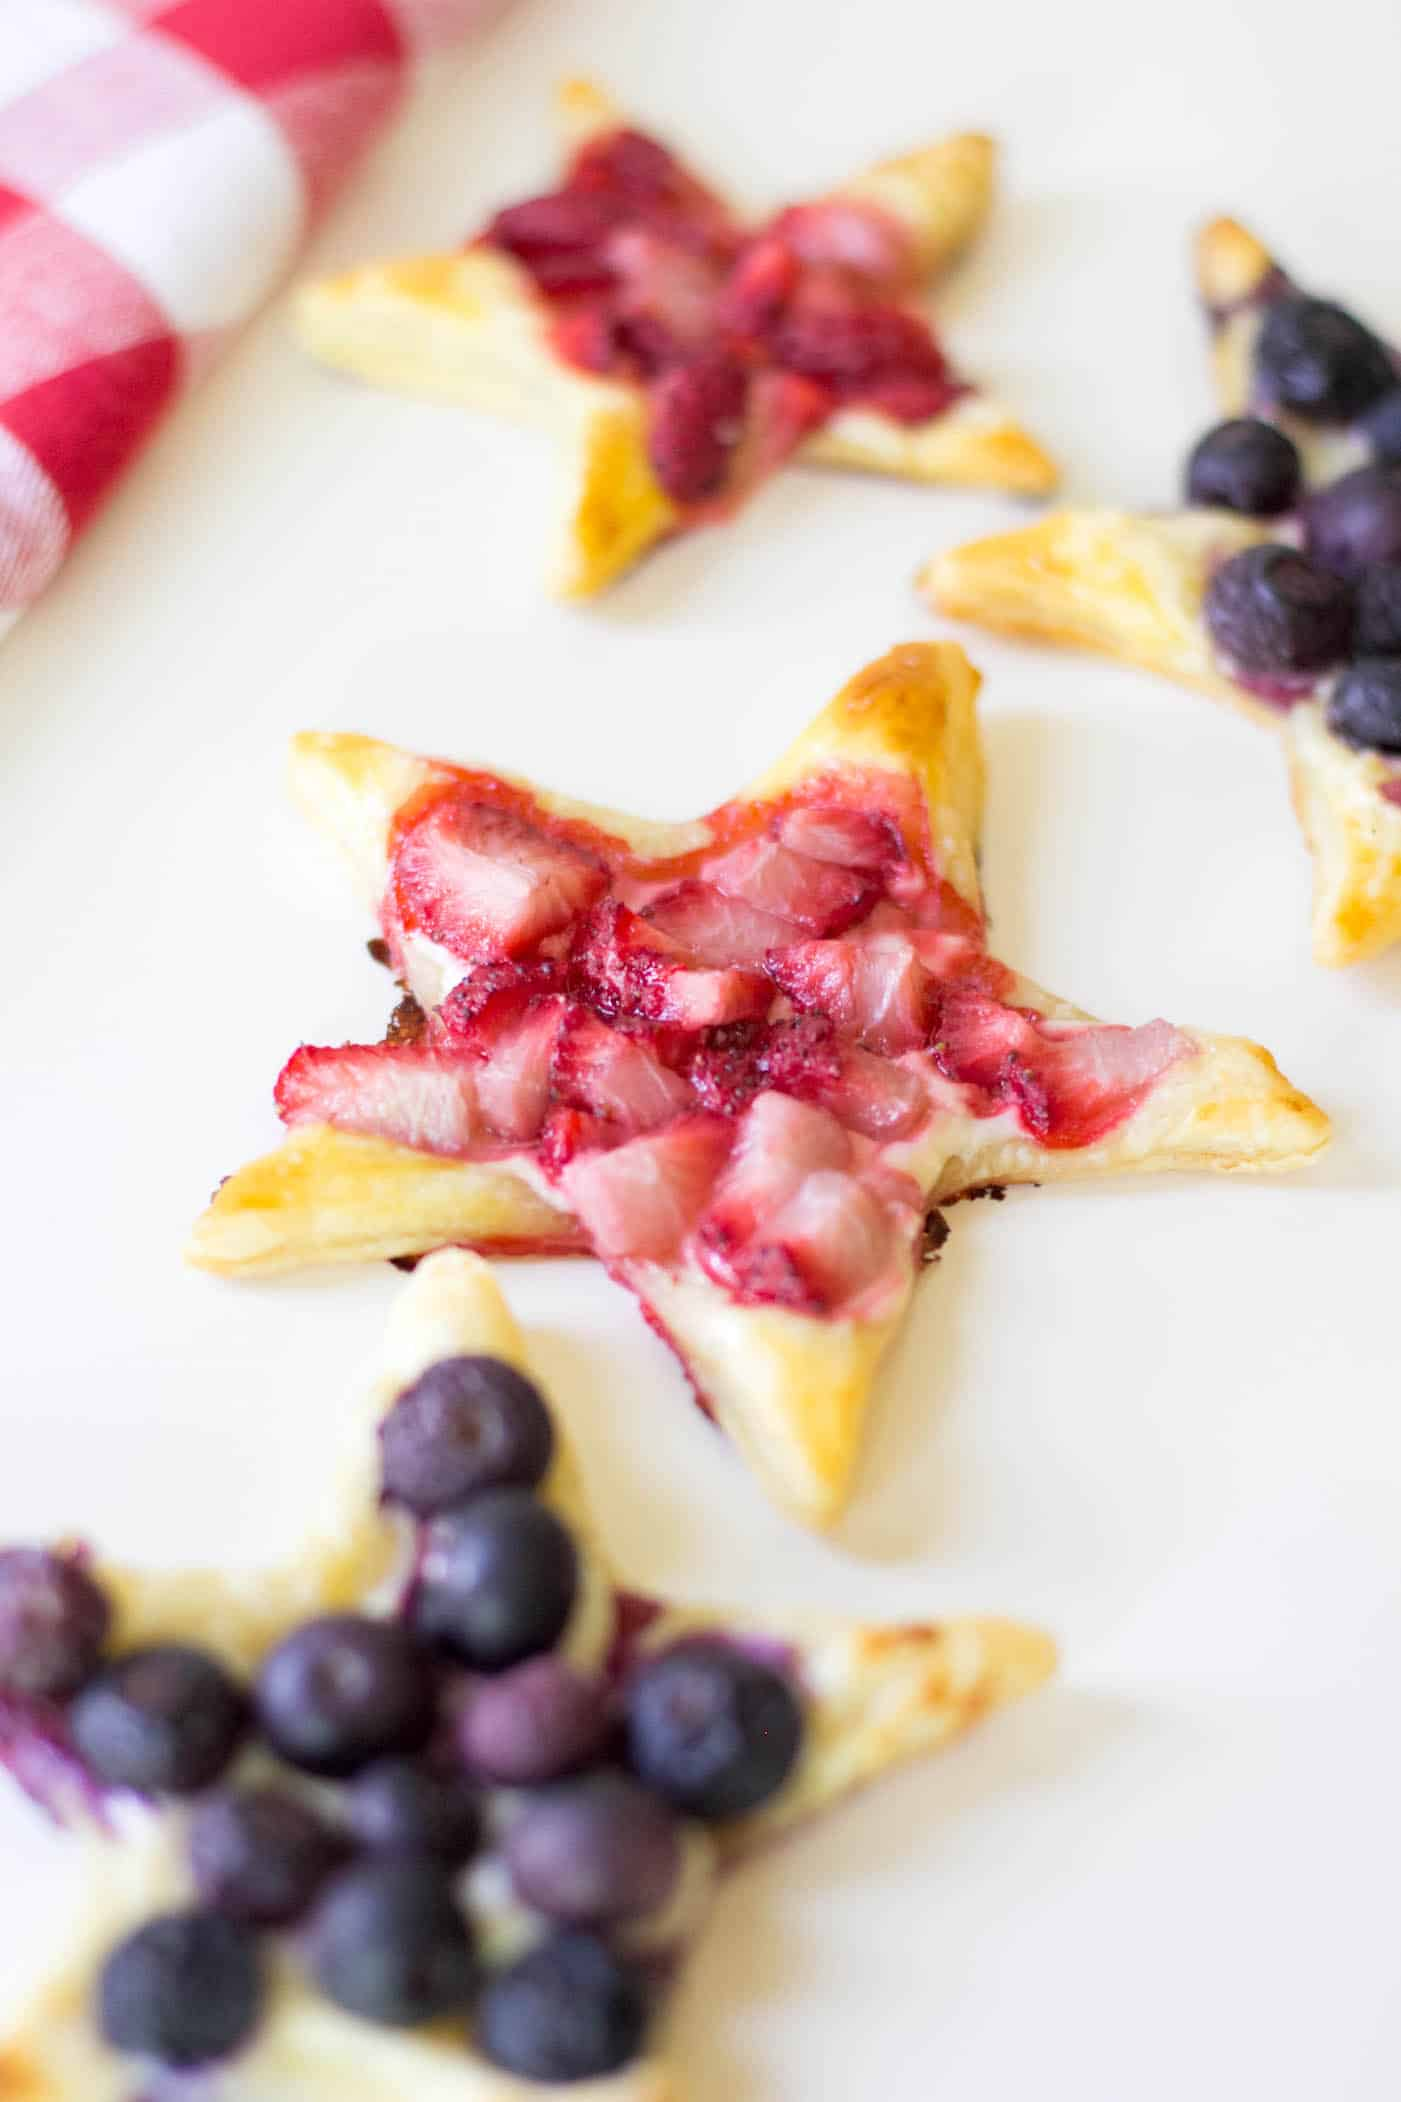 This delicious puff pastry recipe is perfect for summer! You'll use mixed berries along with cream cheese to make this tasty, star-shaped dessert.